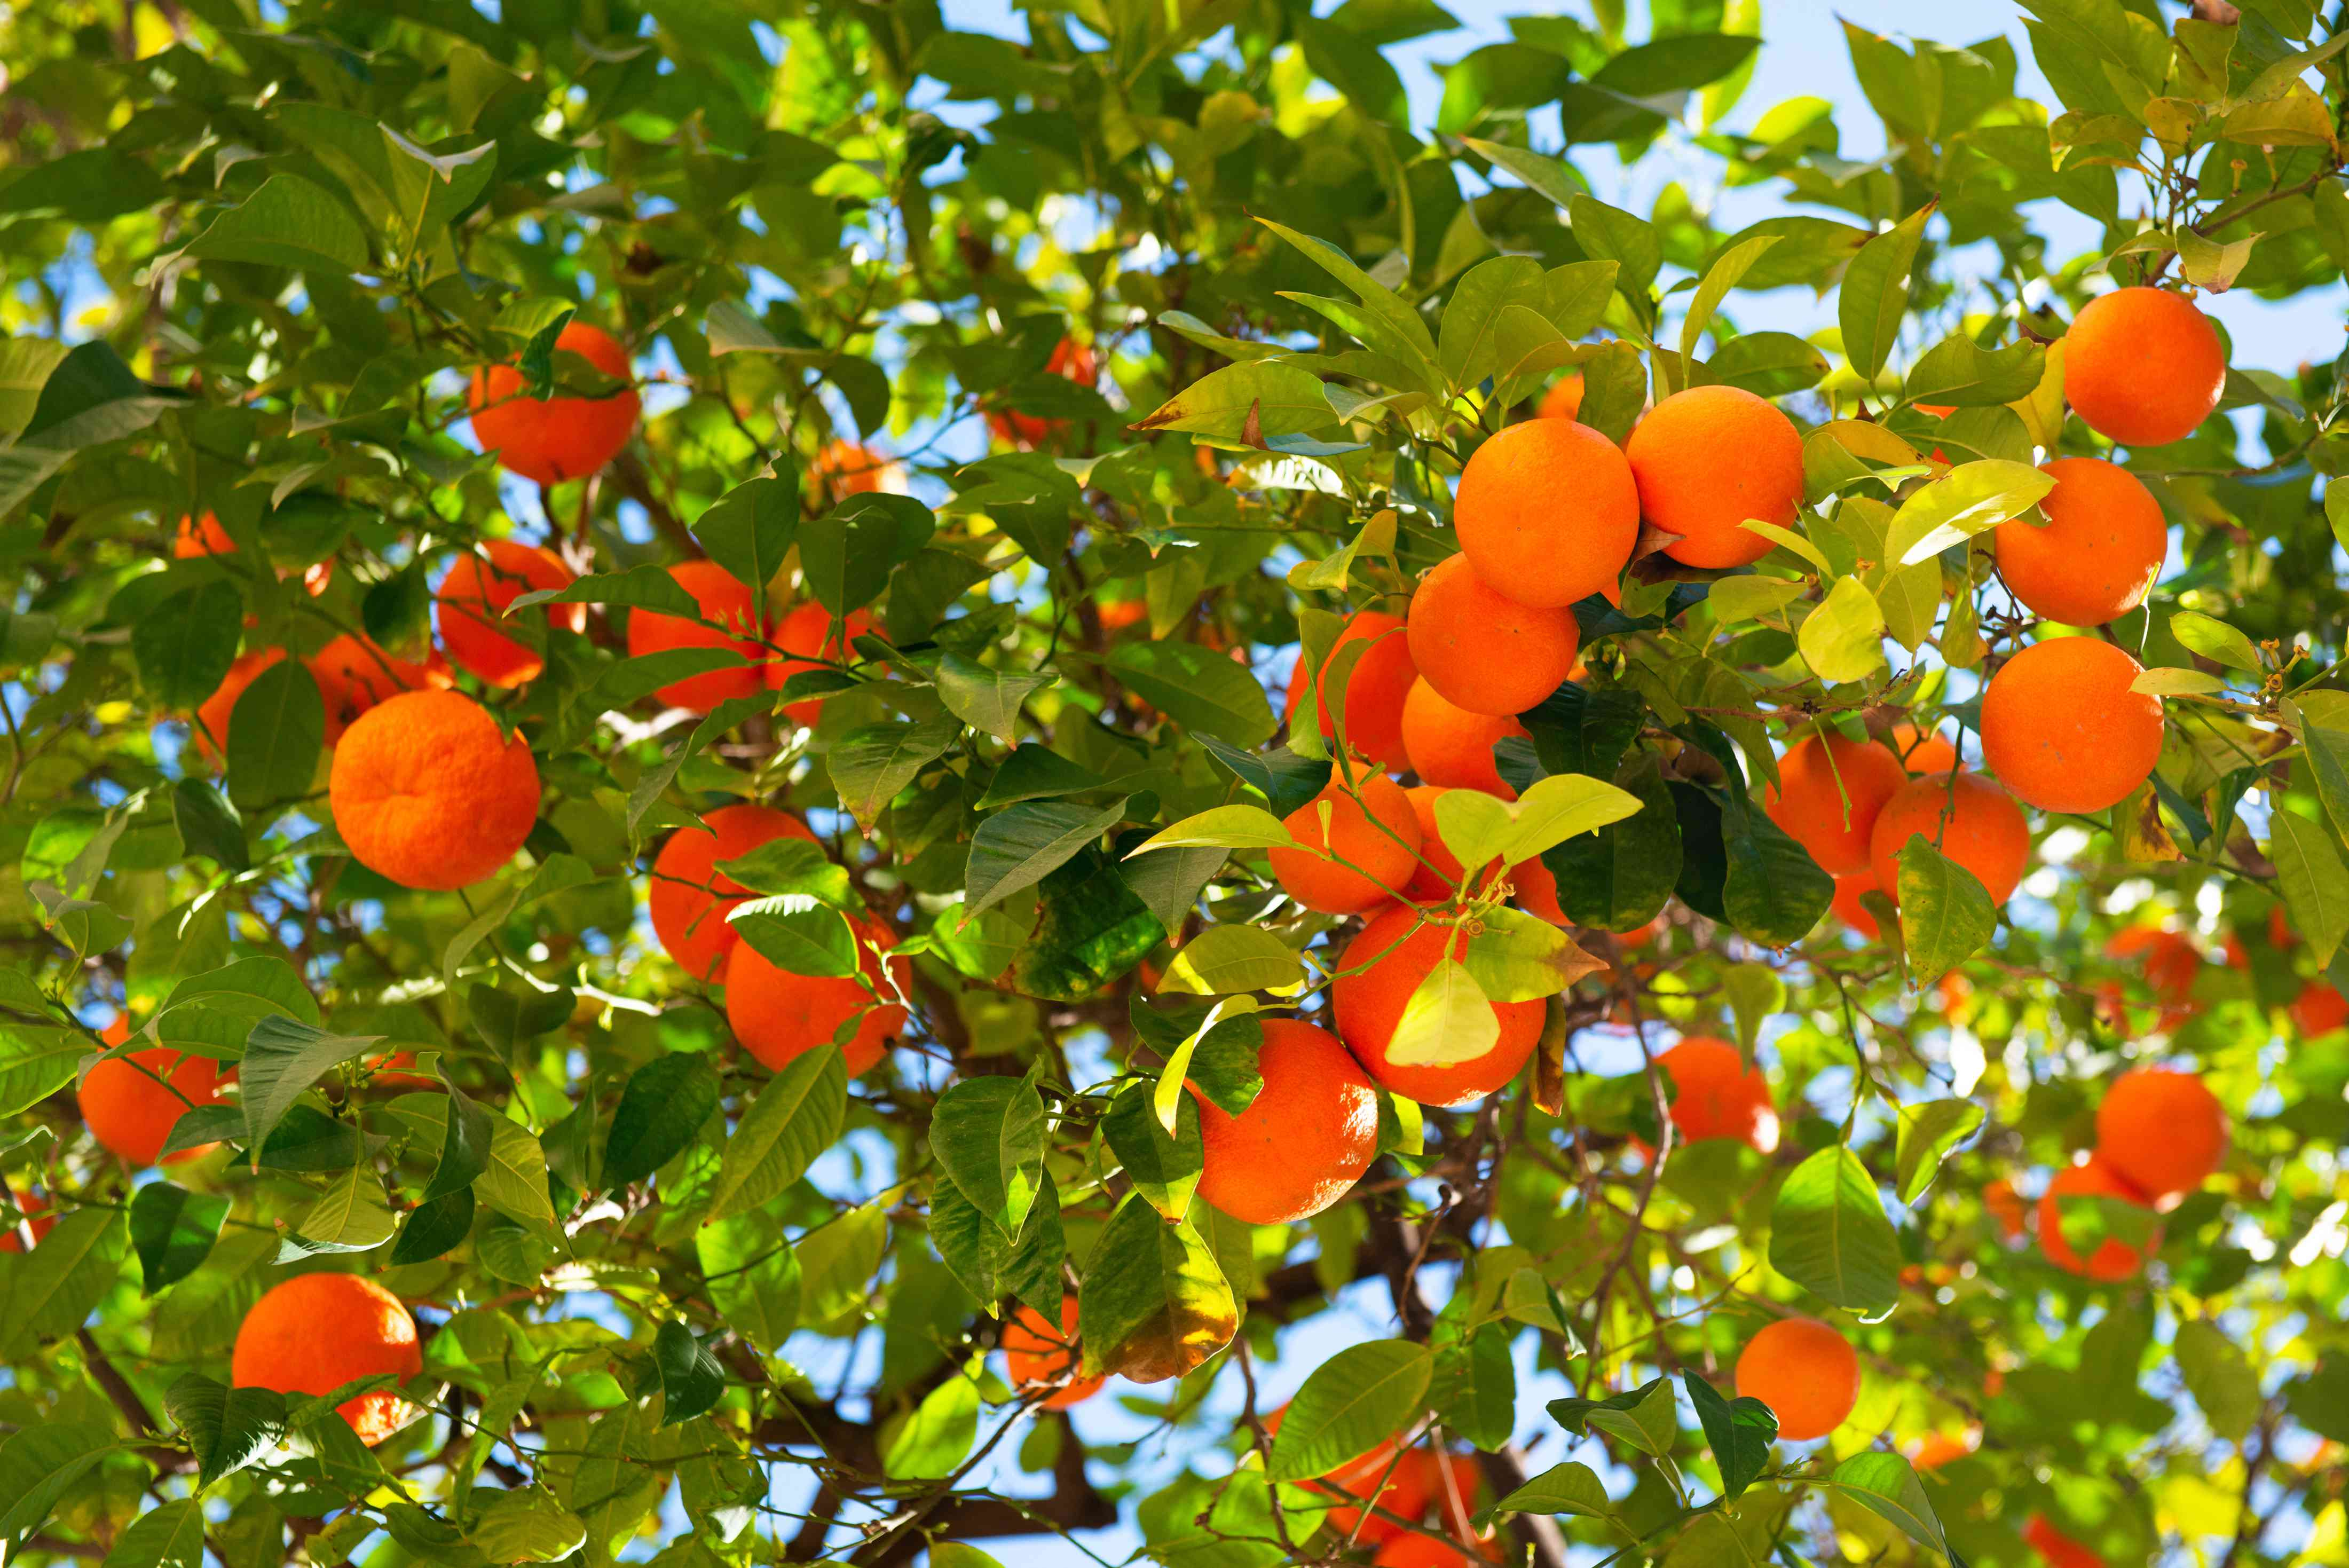 Satsuma tree branches with round orange fruit hanging beneath branches